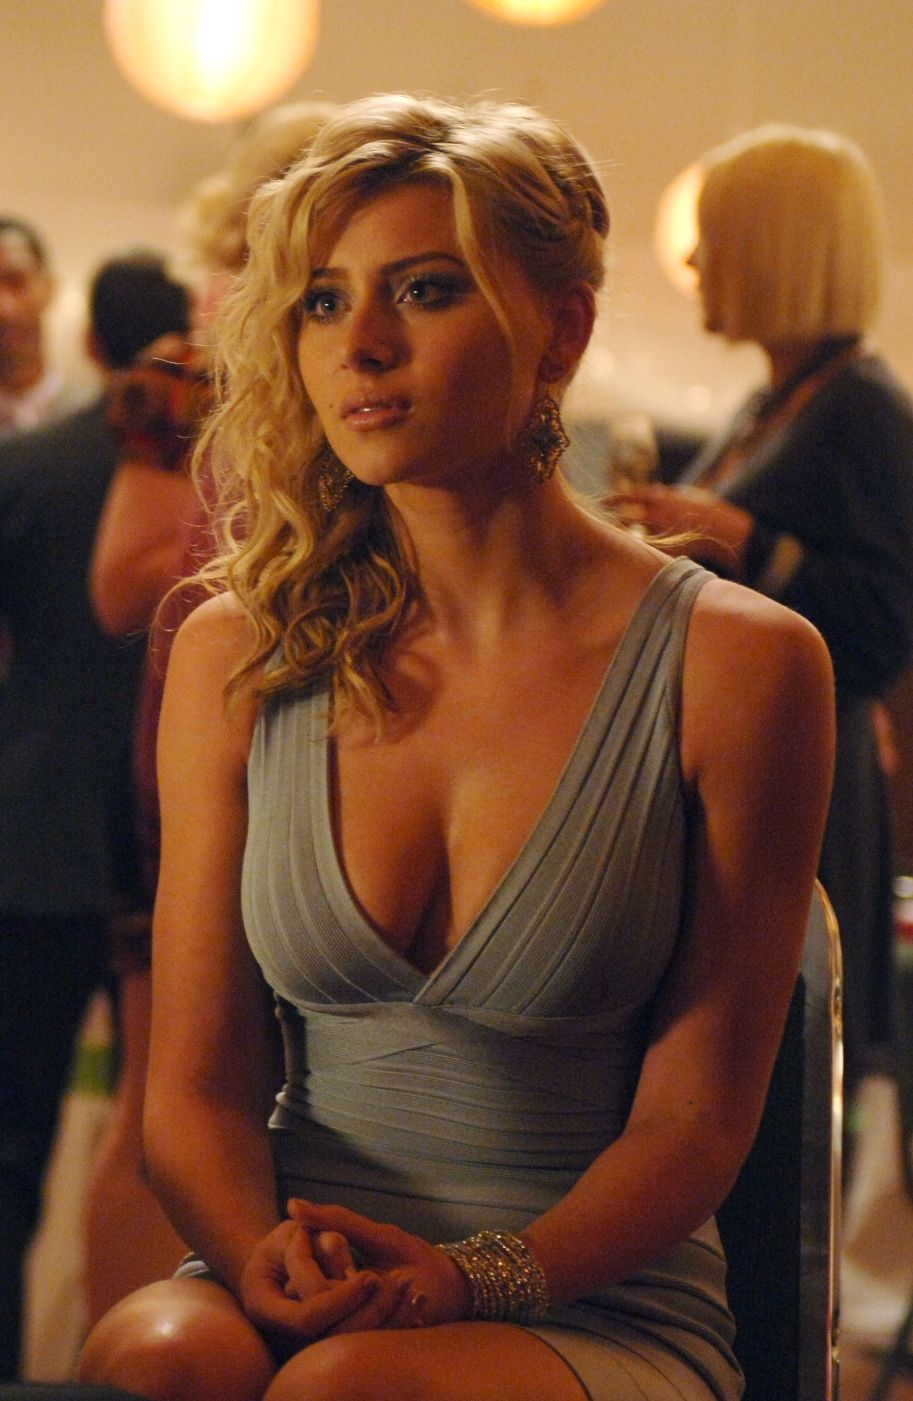 Aly Michalka Hot and Sexy Photo